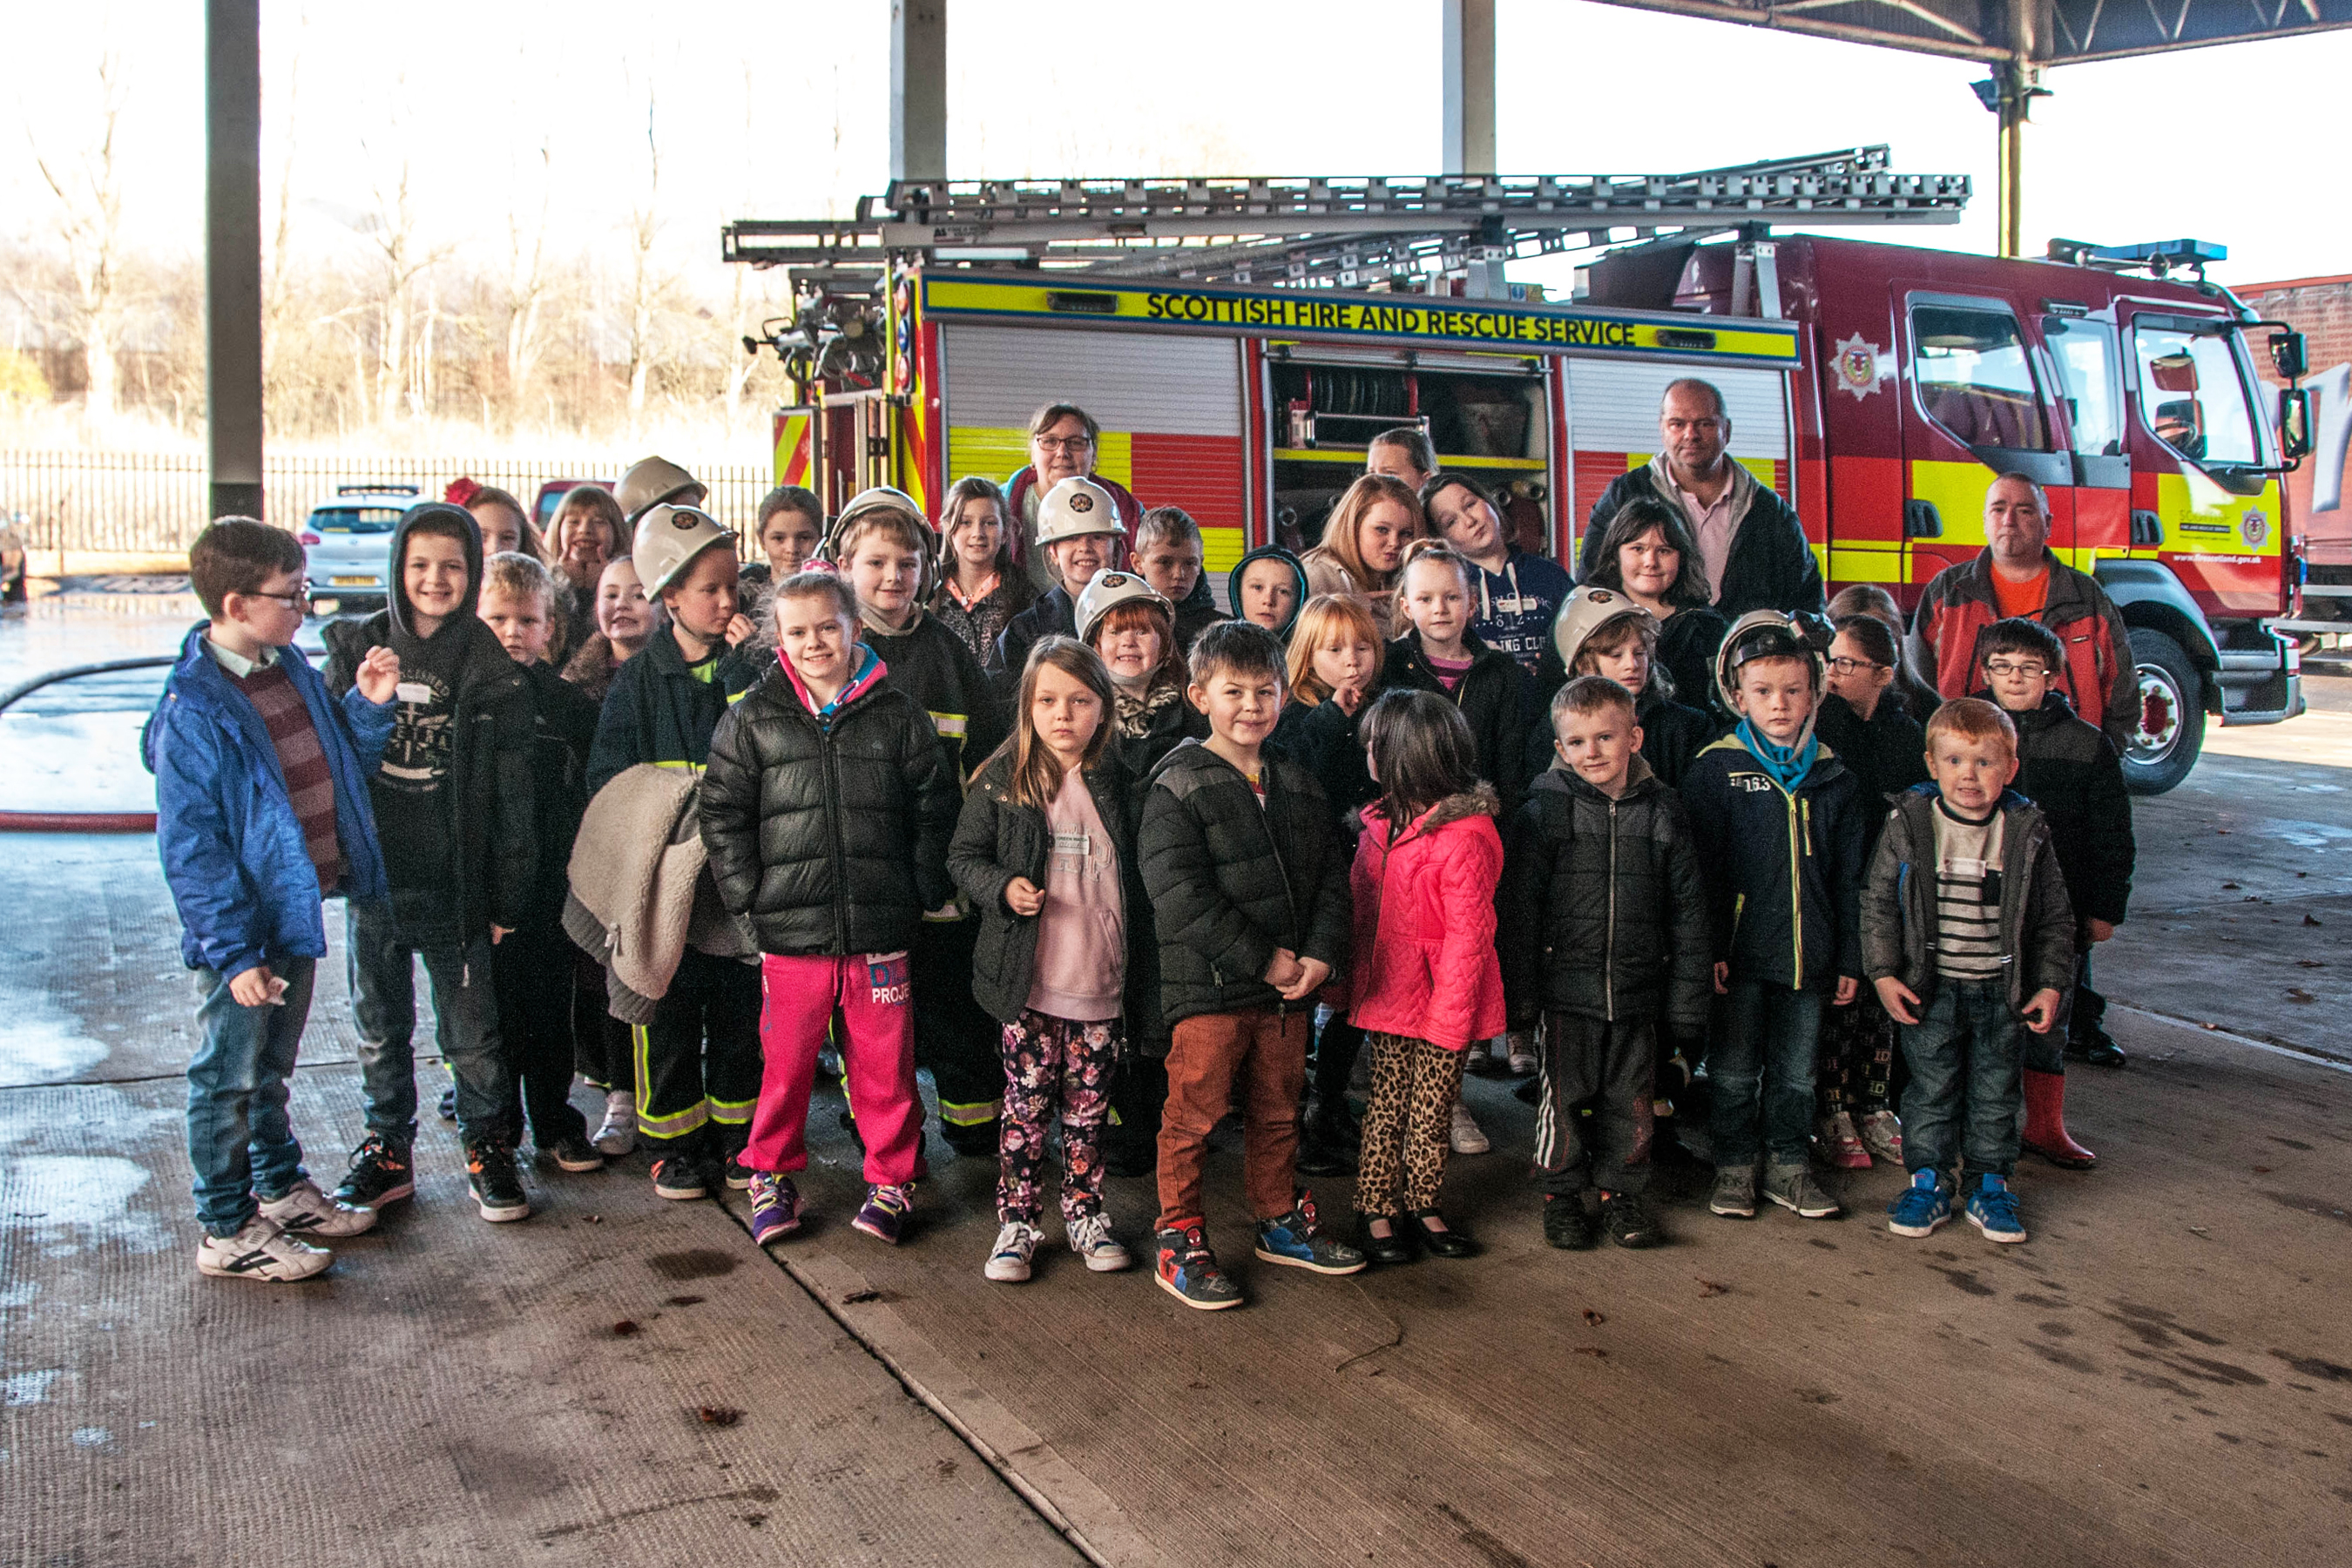 Alloa fire station says 'Thank you' to Hawkhill youth group